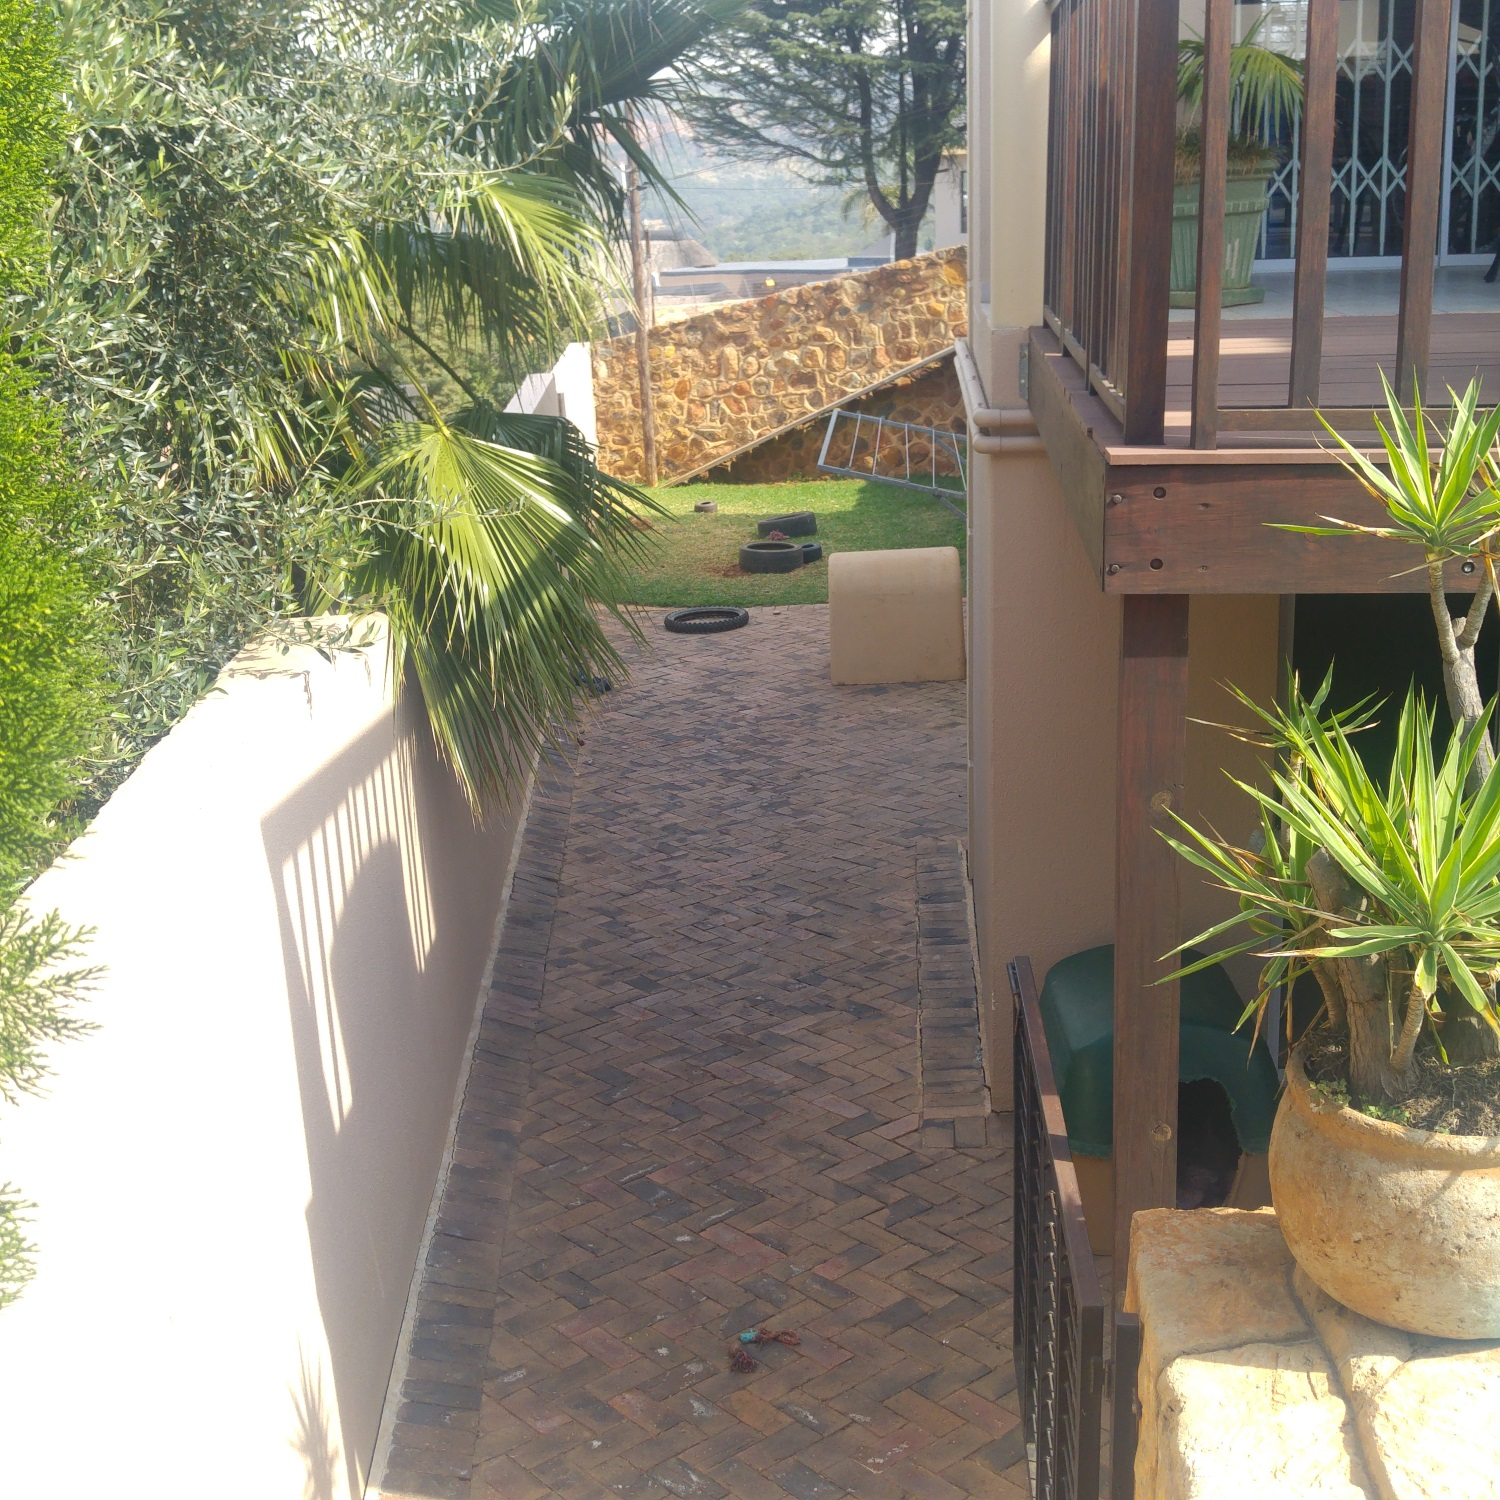 4 Bedroom Townhouse for sale in Glenvista Ext 6 ENT0001967 : photo#29